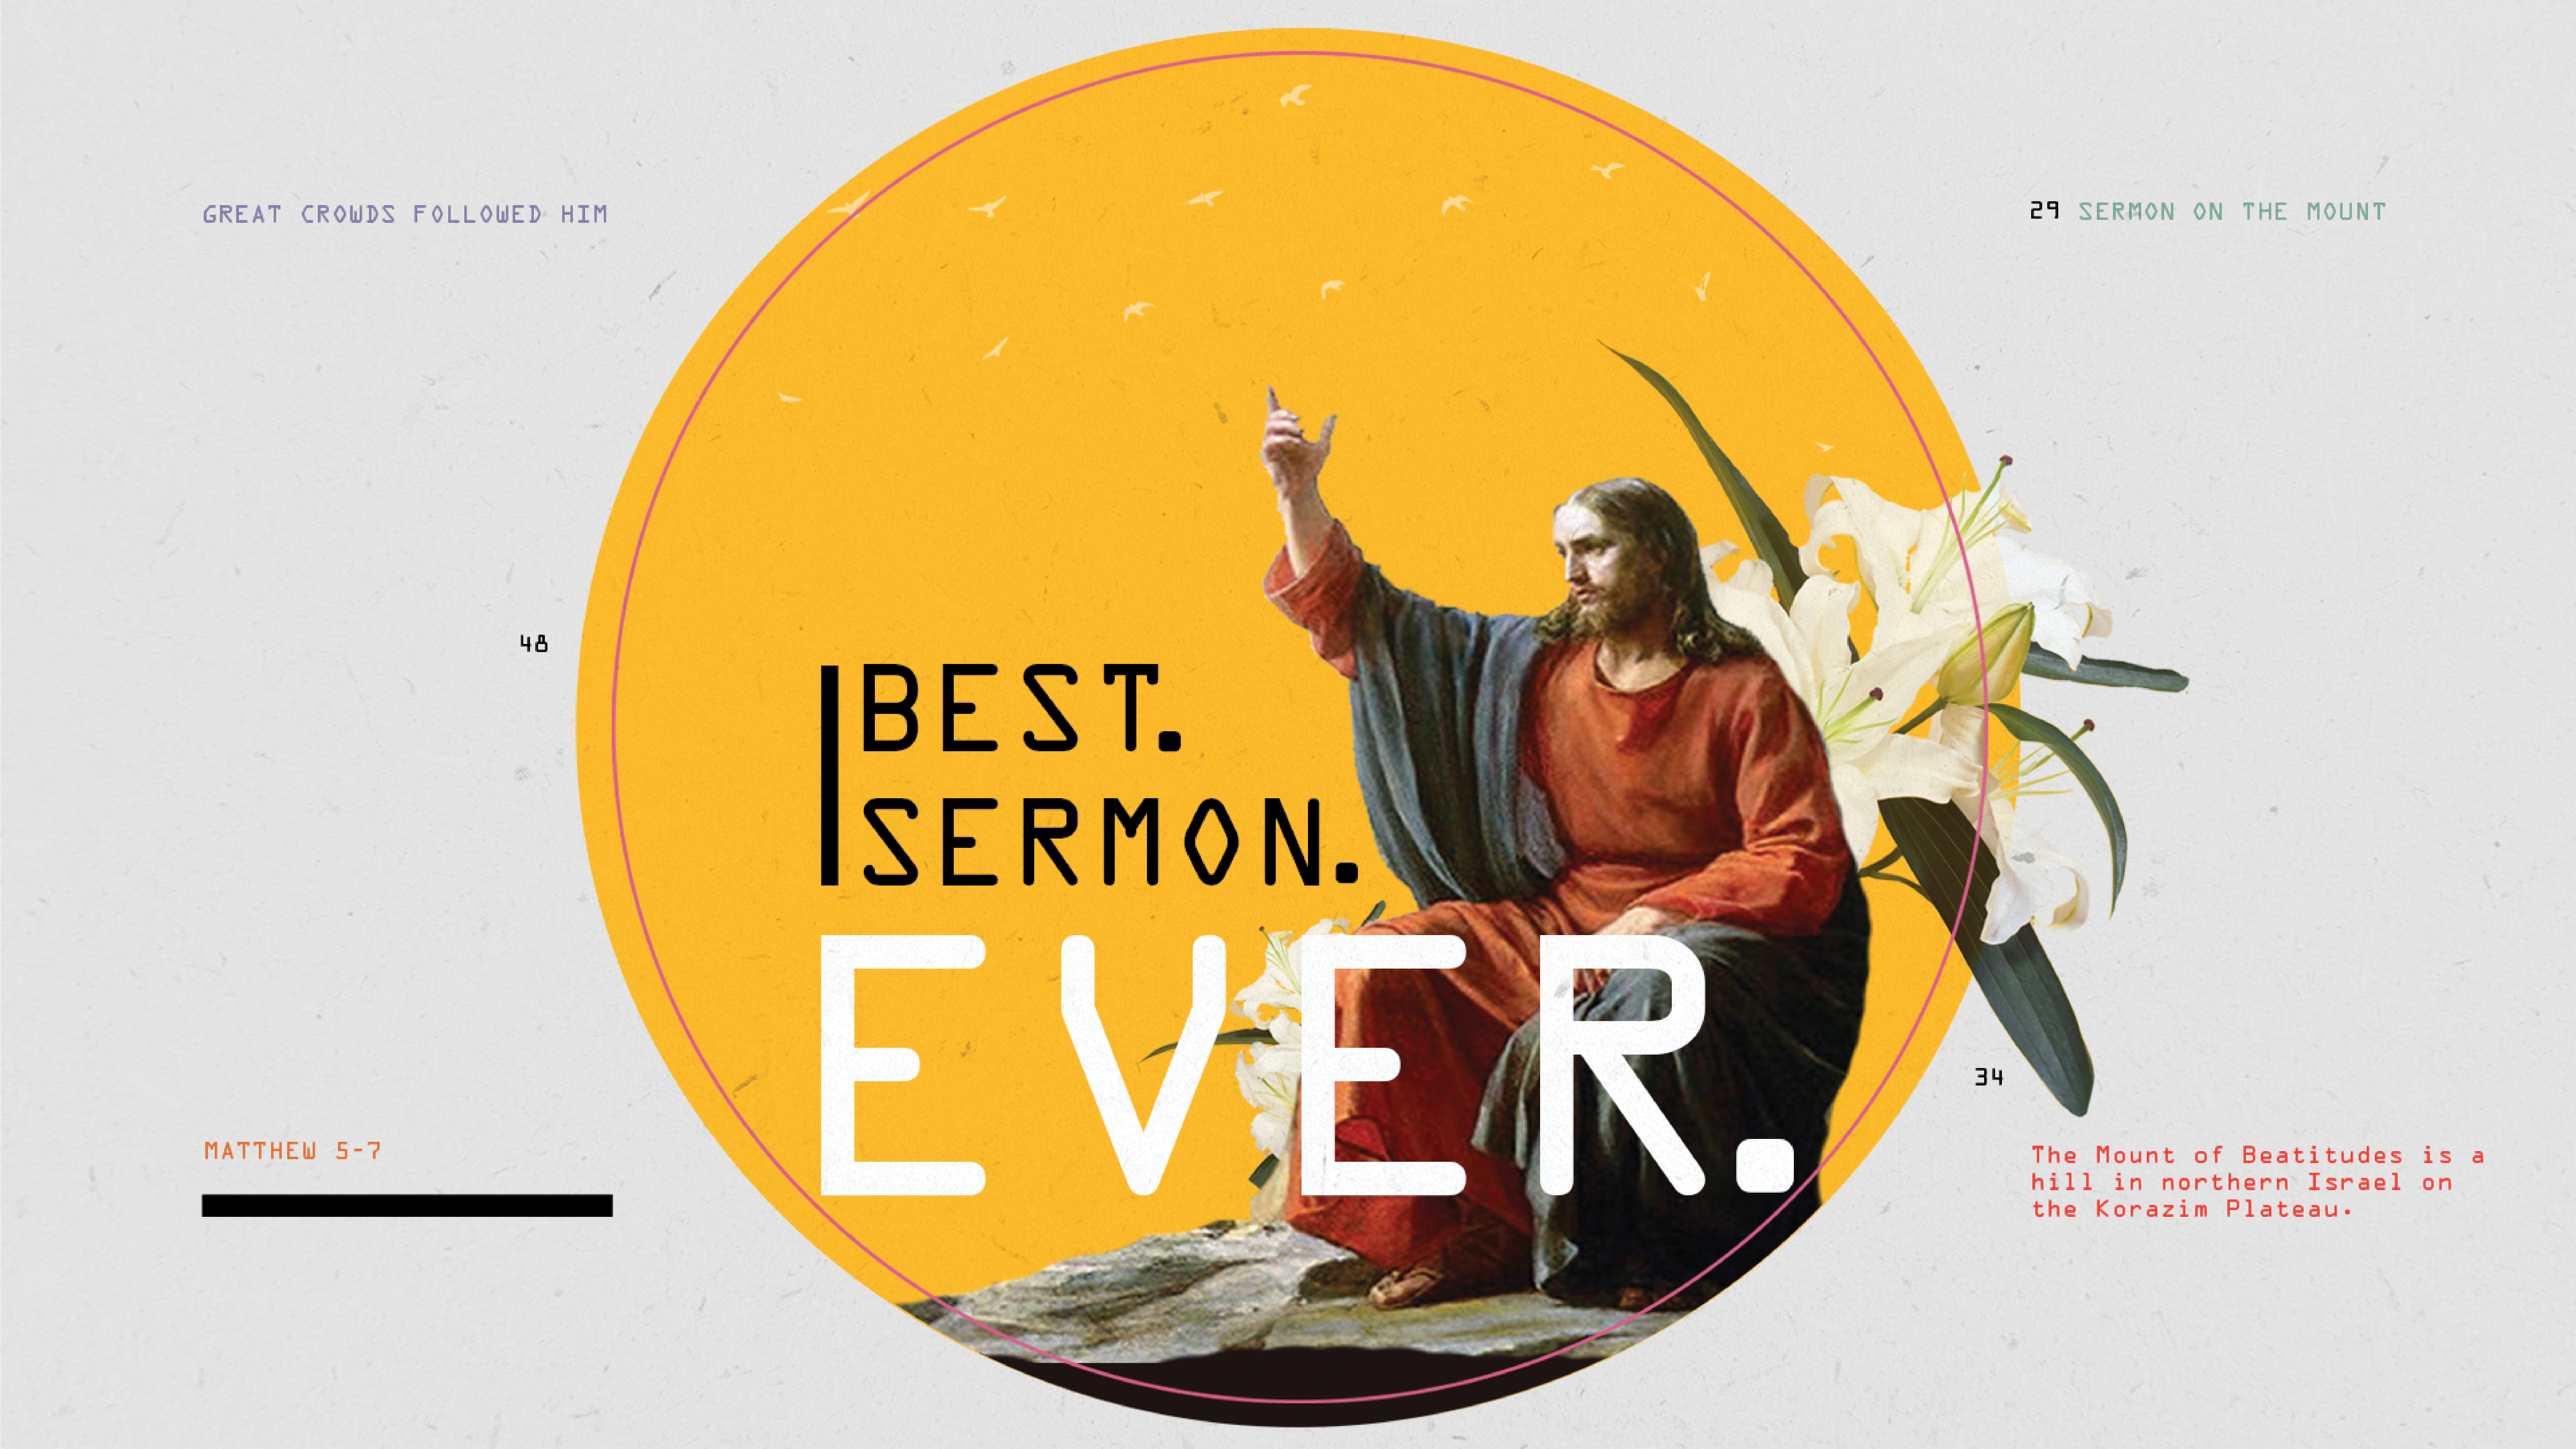 Best. Sermon. Ever. - Week 4: Lust, Divorce and Oaths